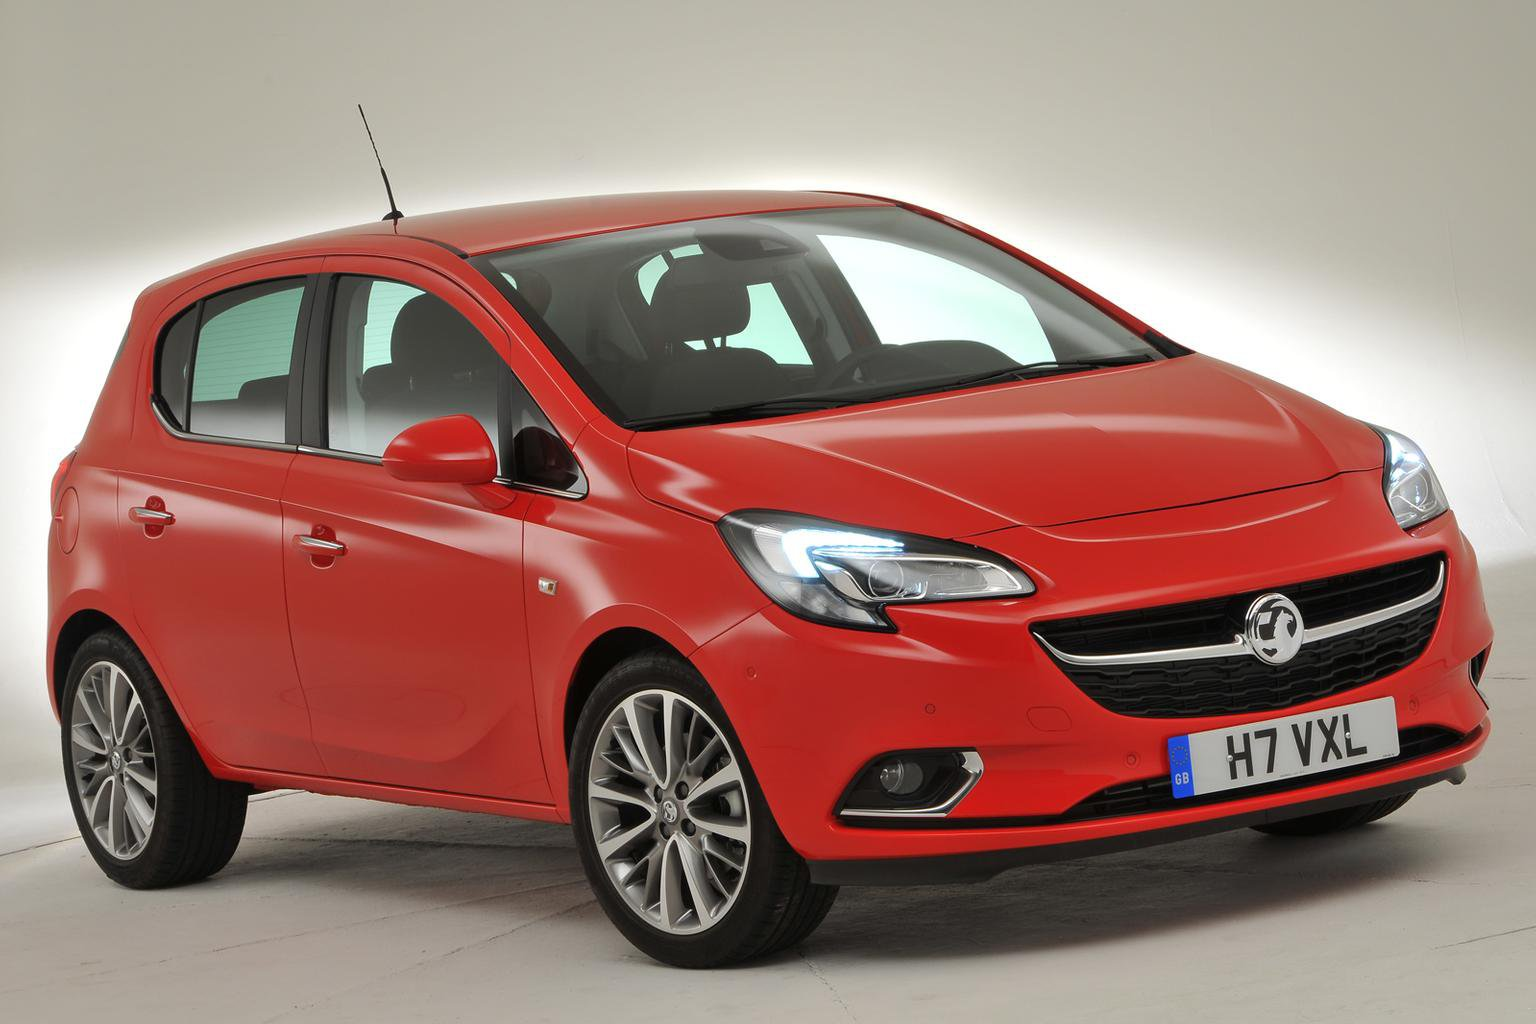 Exclusive preview of the new 2015 Vauxhall Corsa